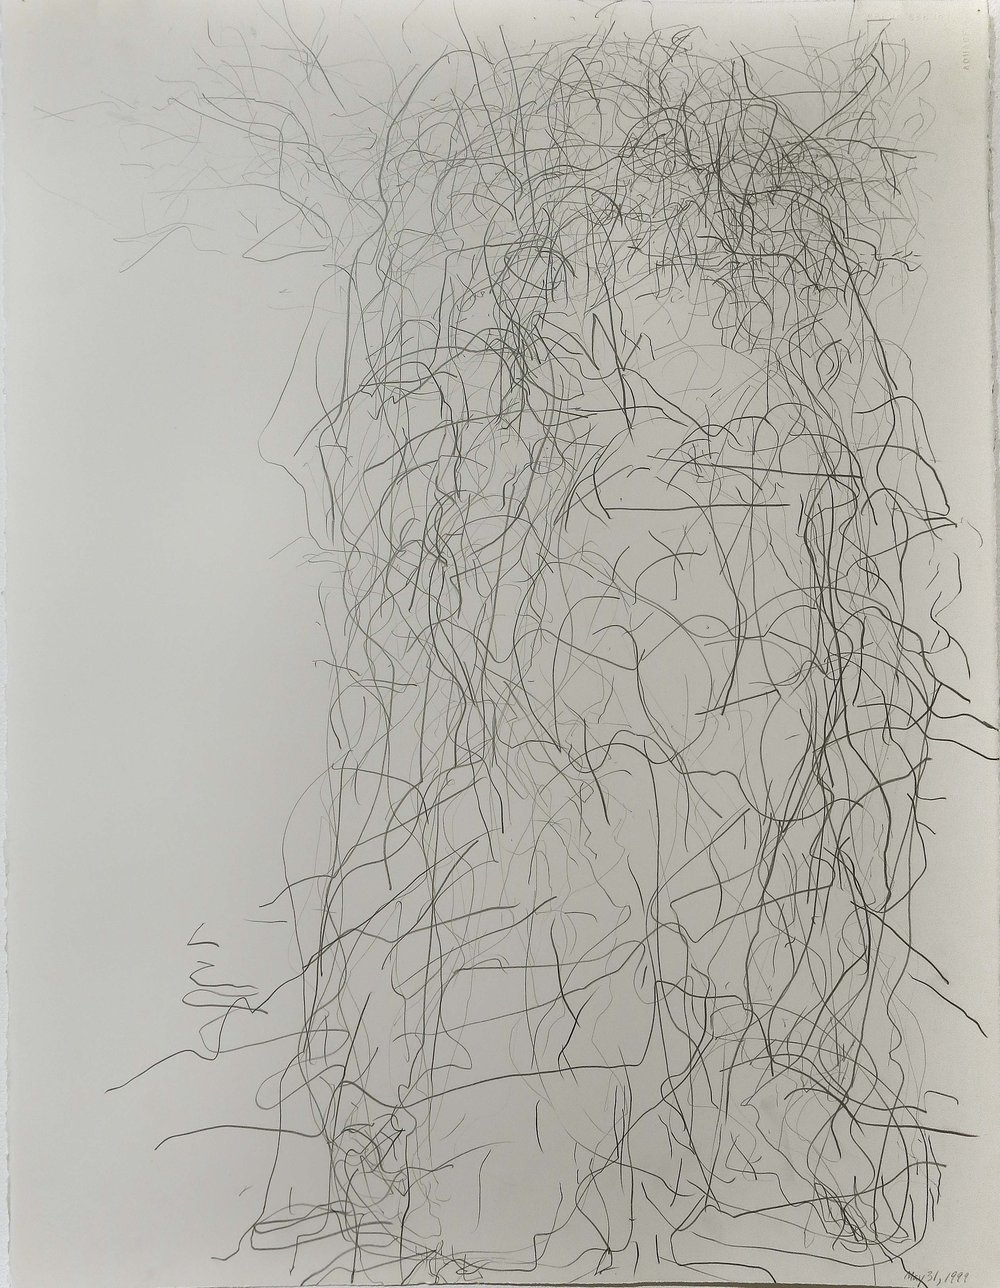 Edward Finnegan,  May 31, 1999 (Portraits series) , 1999, Graphite on paper, 30h x 22.5w in.